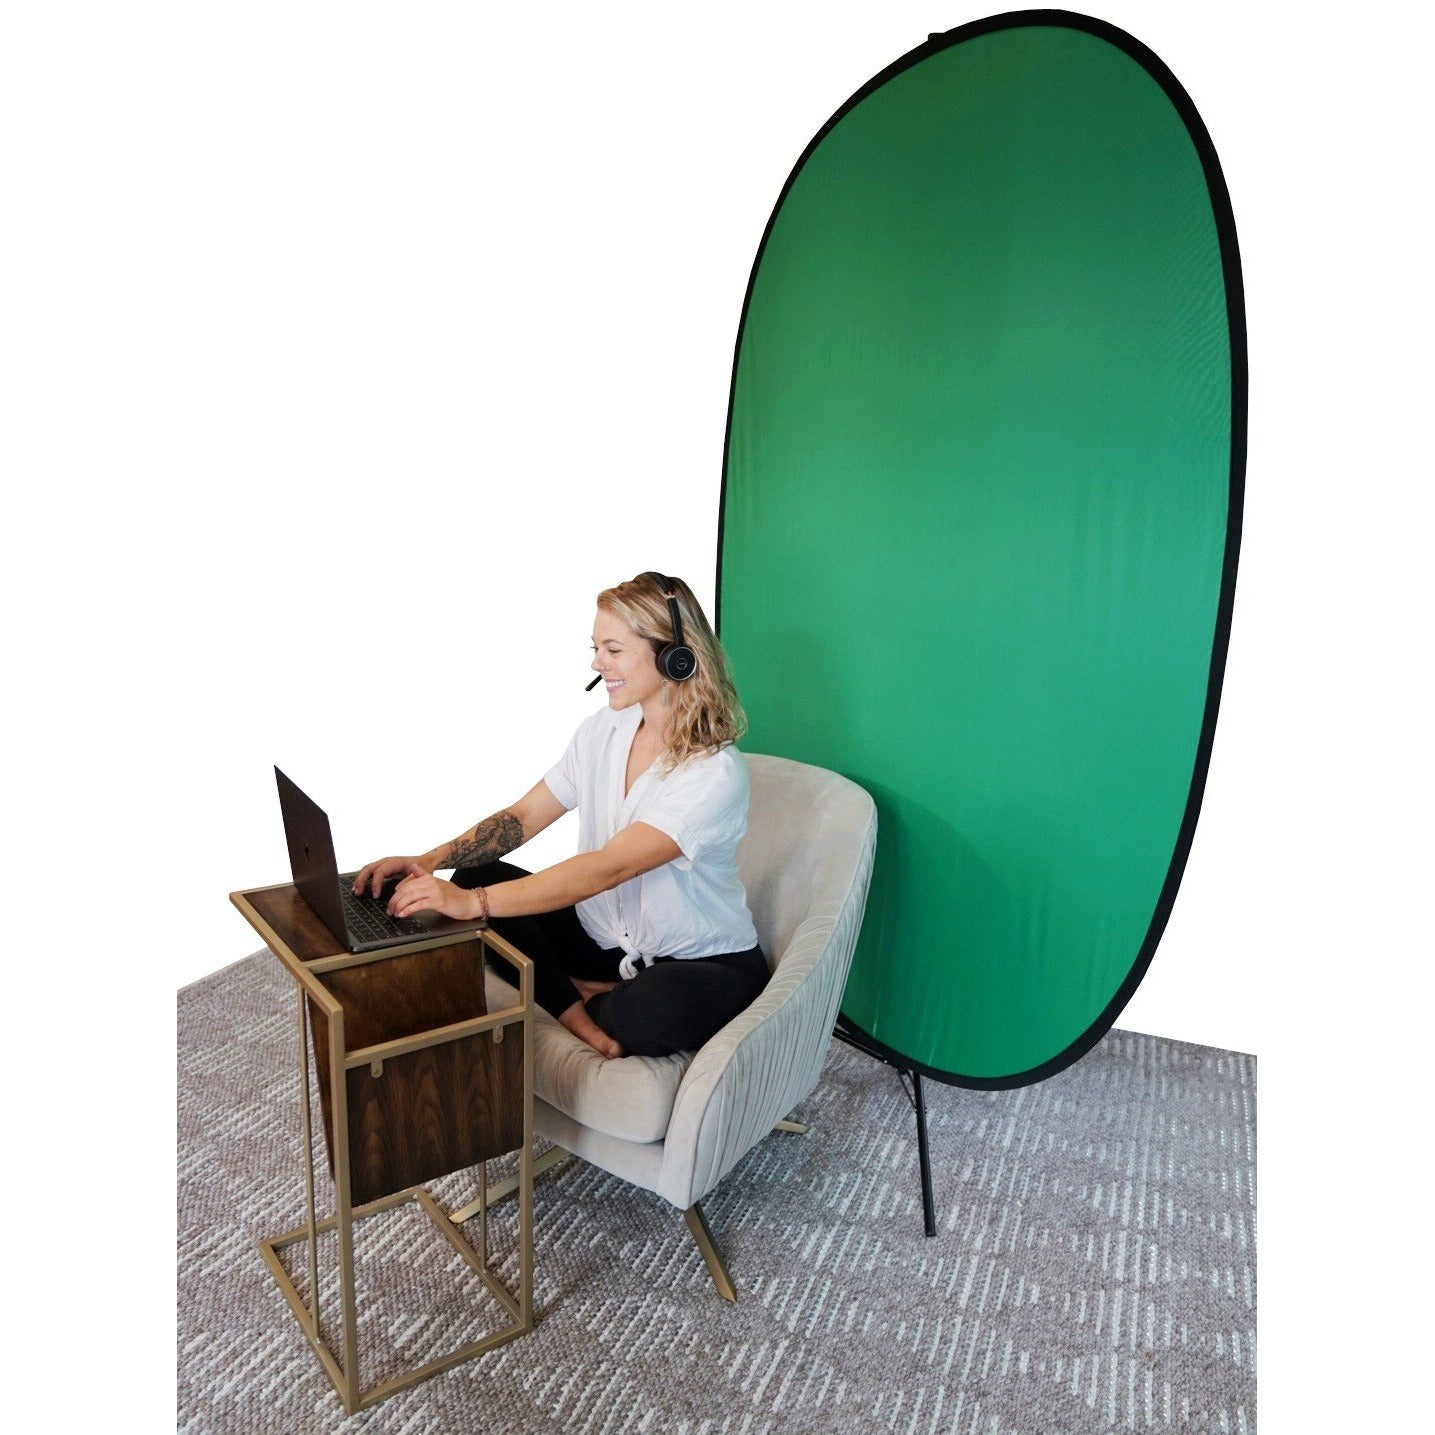 The Backdrop | Portable Webcam Green Screen - Remote Office Supplies